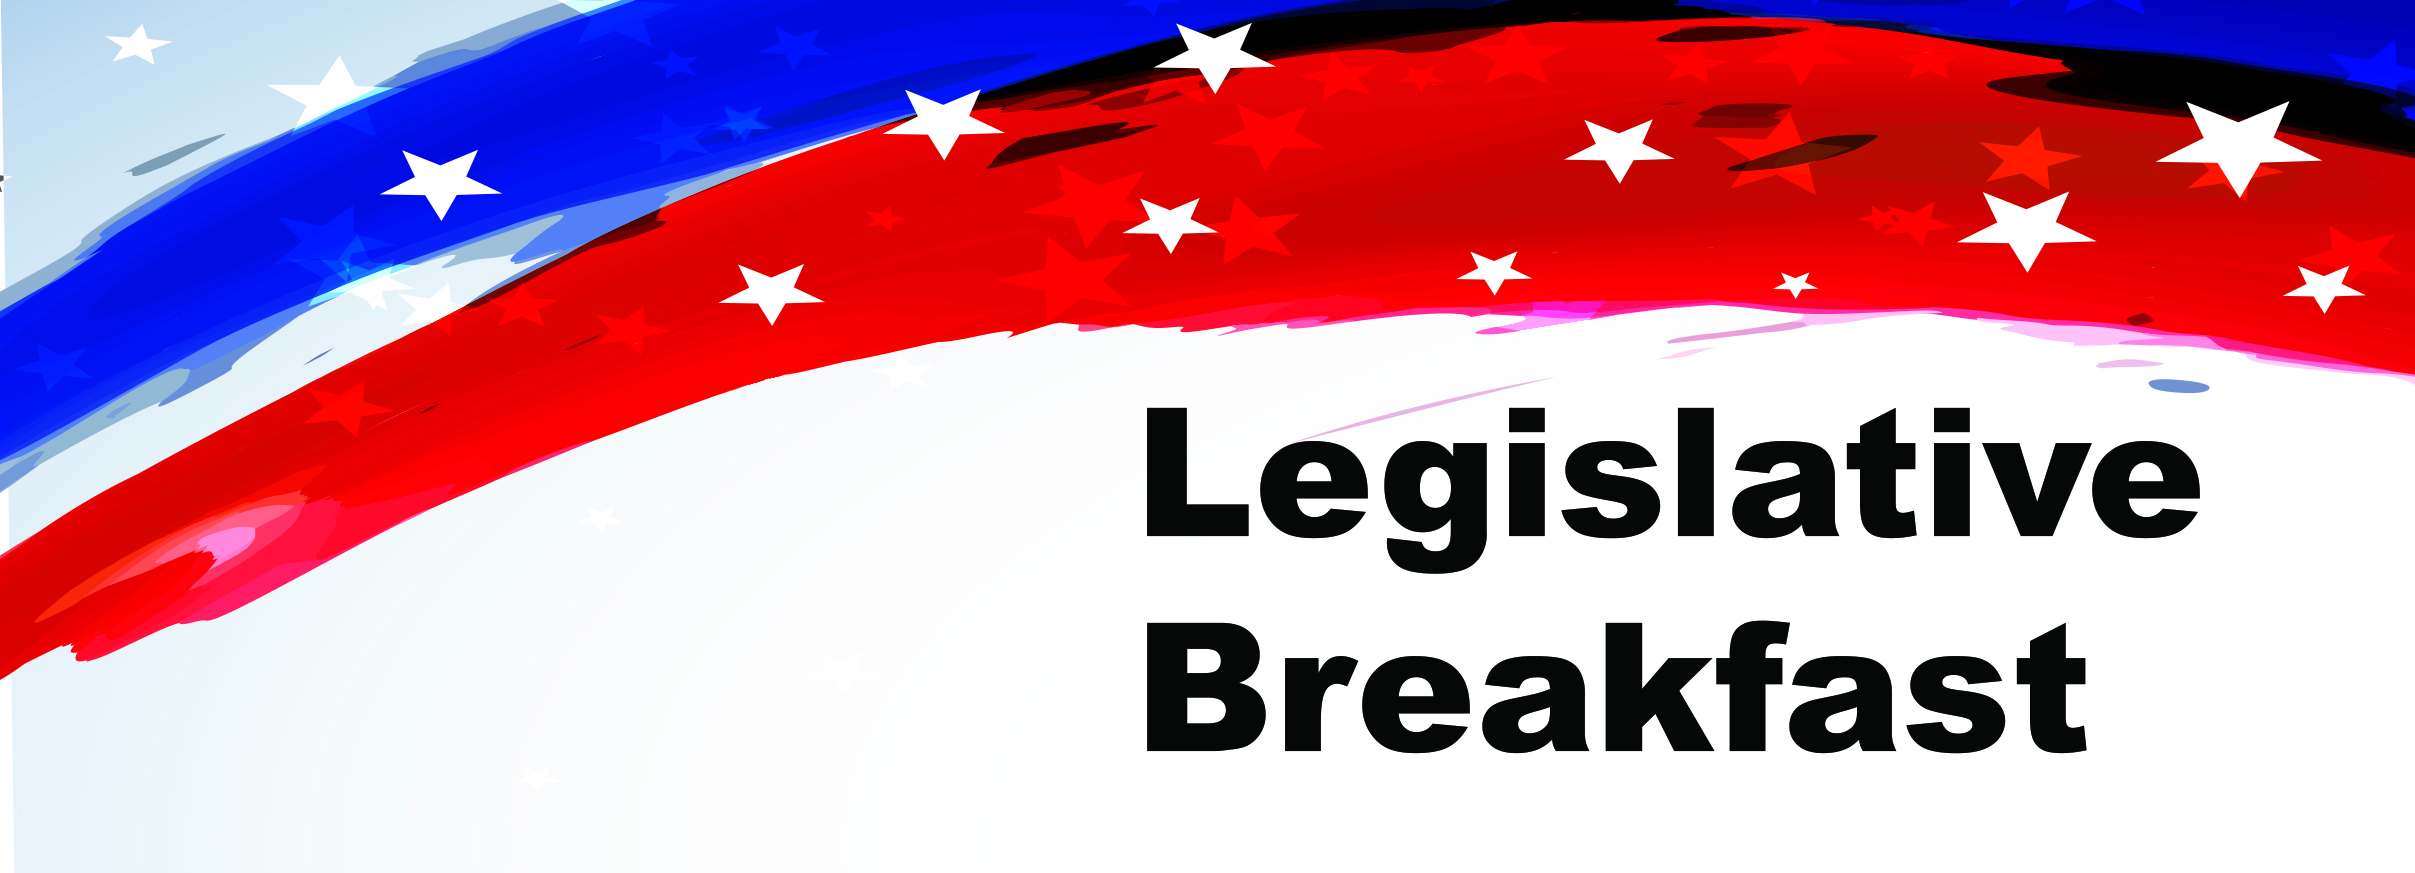 Rescheduled March 20th Legislative Breakfast – Developers and Members Only